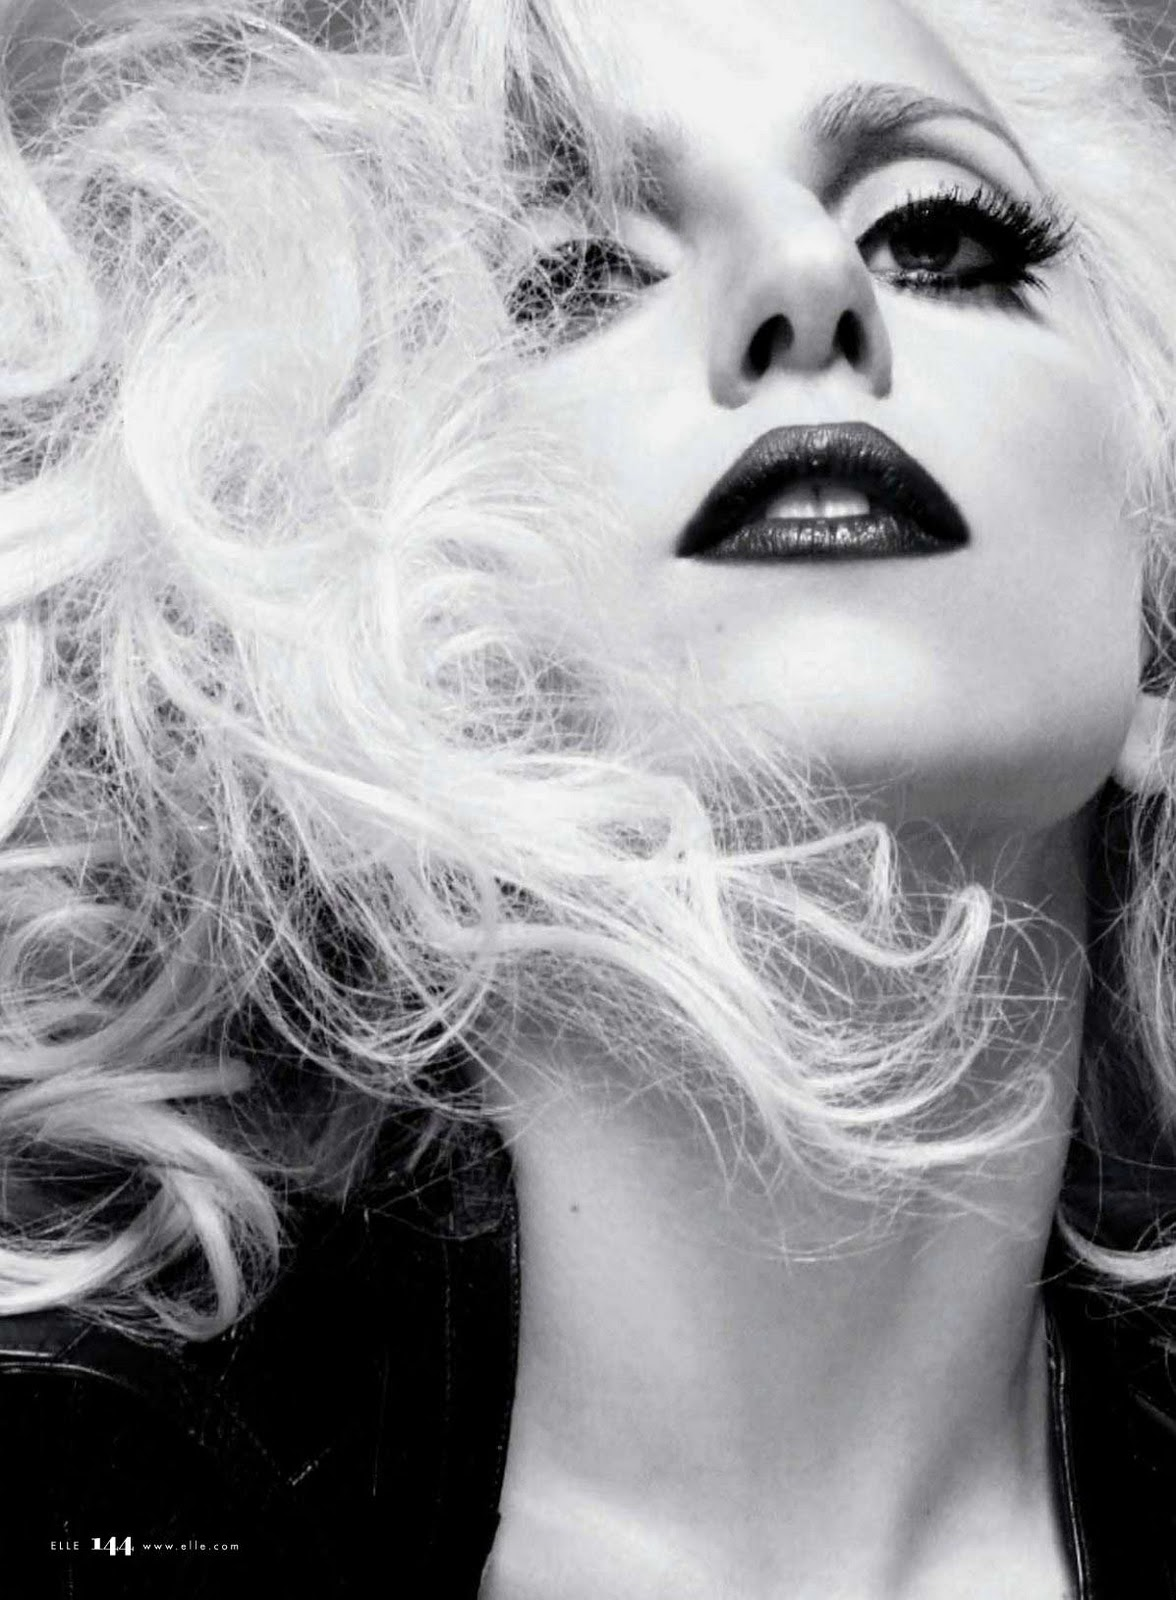 http://1.bp.blogspot.com/_E-uykHk4AyM/TLILP0Z7EnI/AAAAAAAACGo/cghKXdXXsuY/s1600/LADY-GAGA-BLACK-AND-WHITE-P.jpg